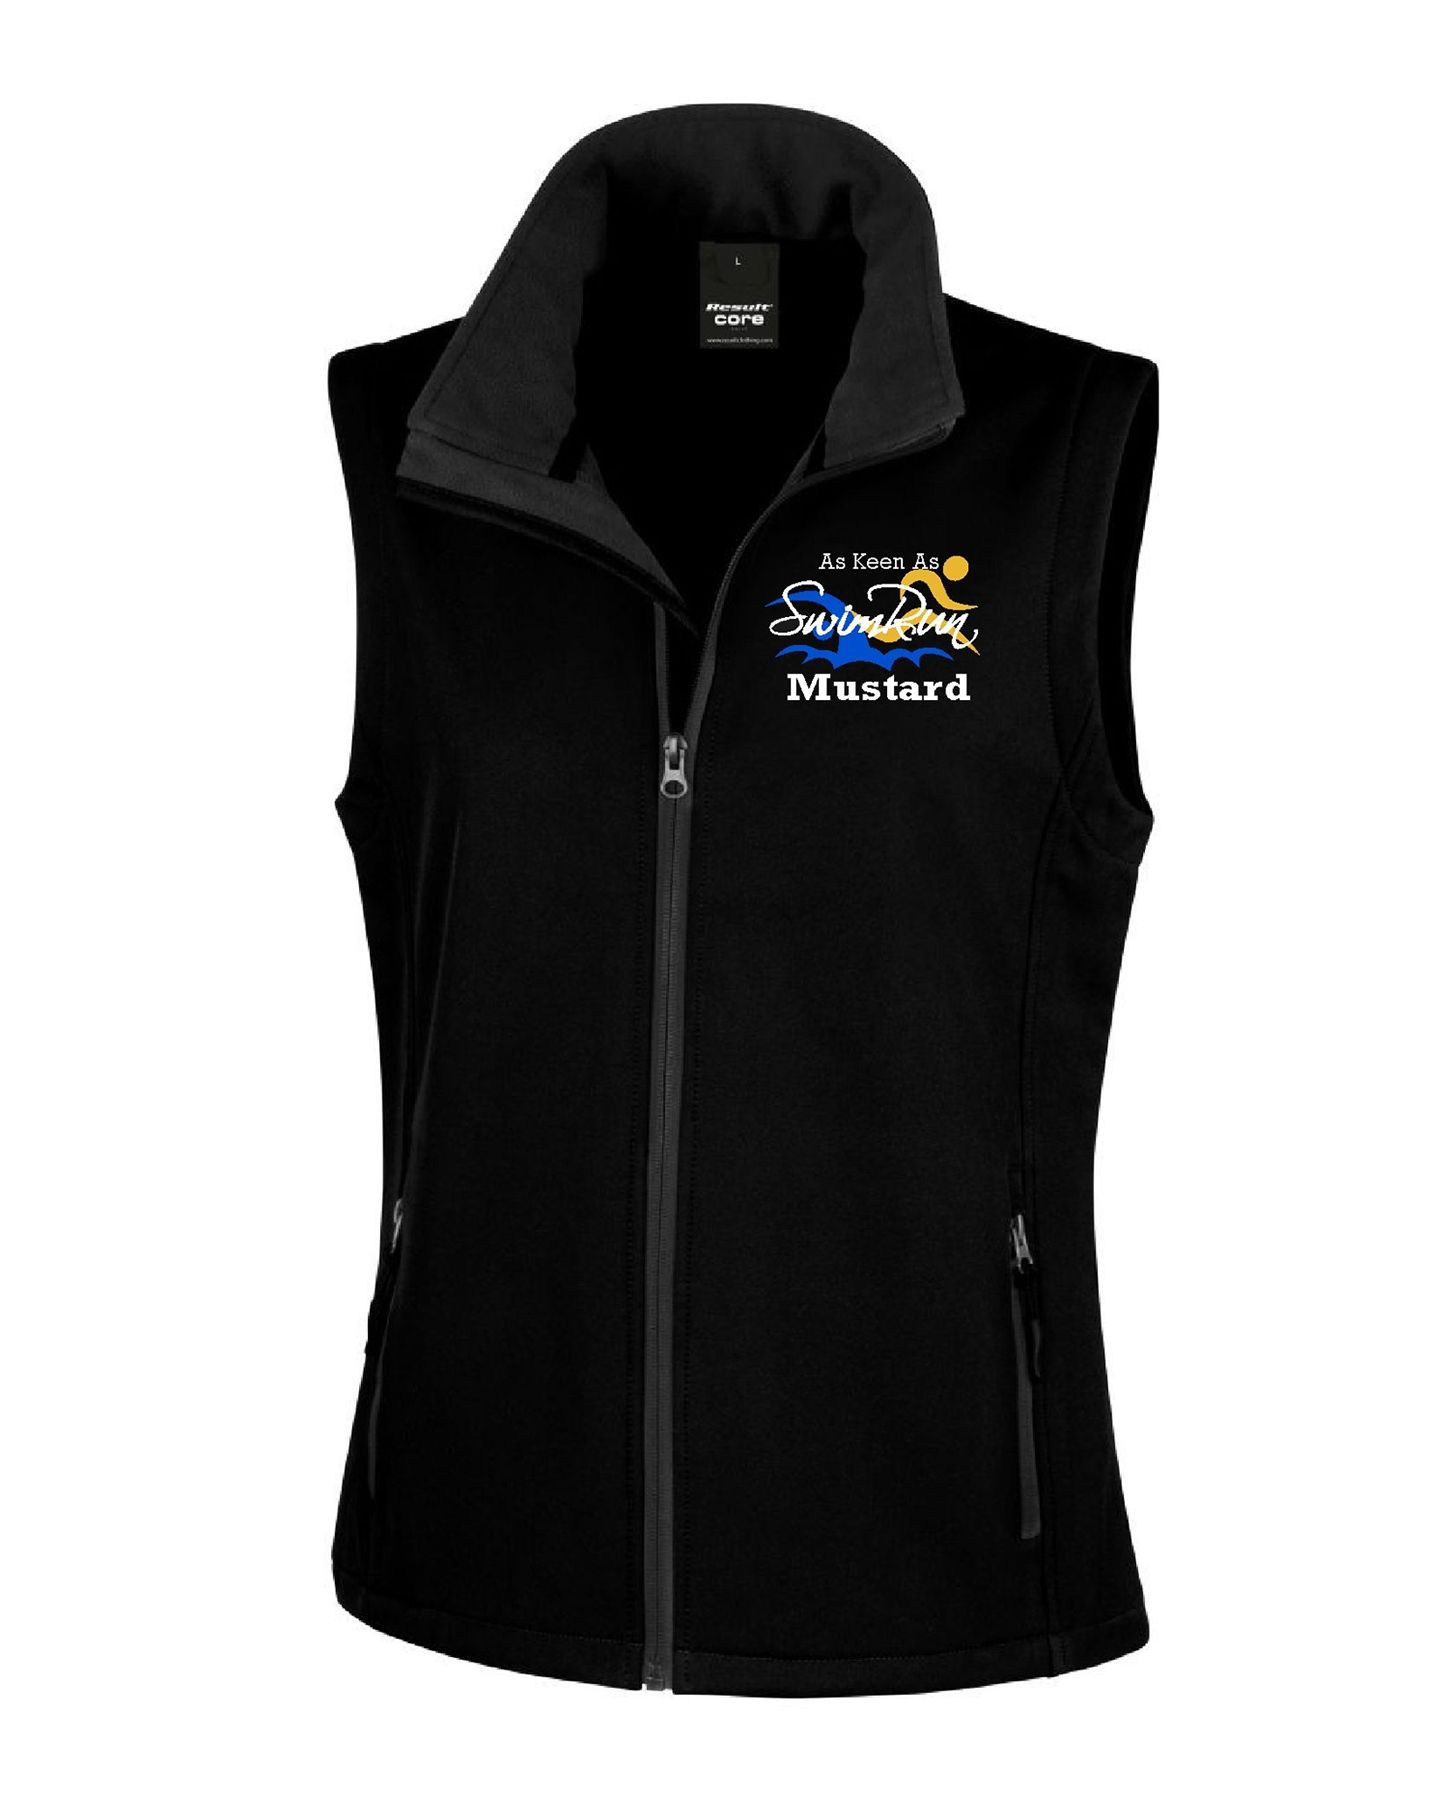 As Keen As Mustard – Softshell Gilet (Ladies)